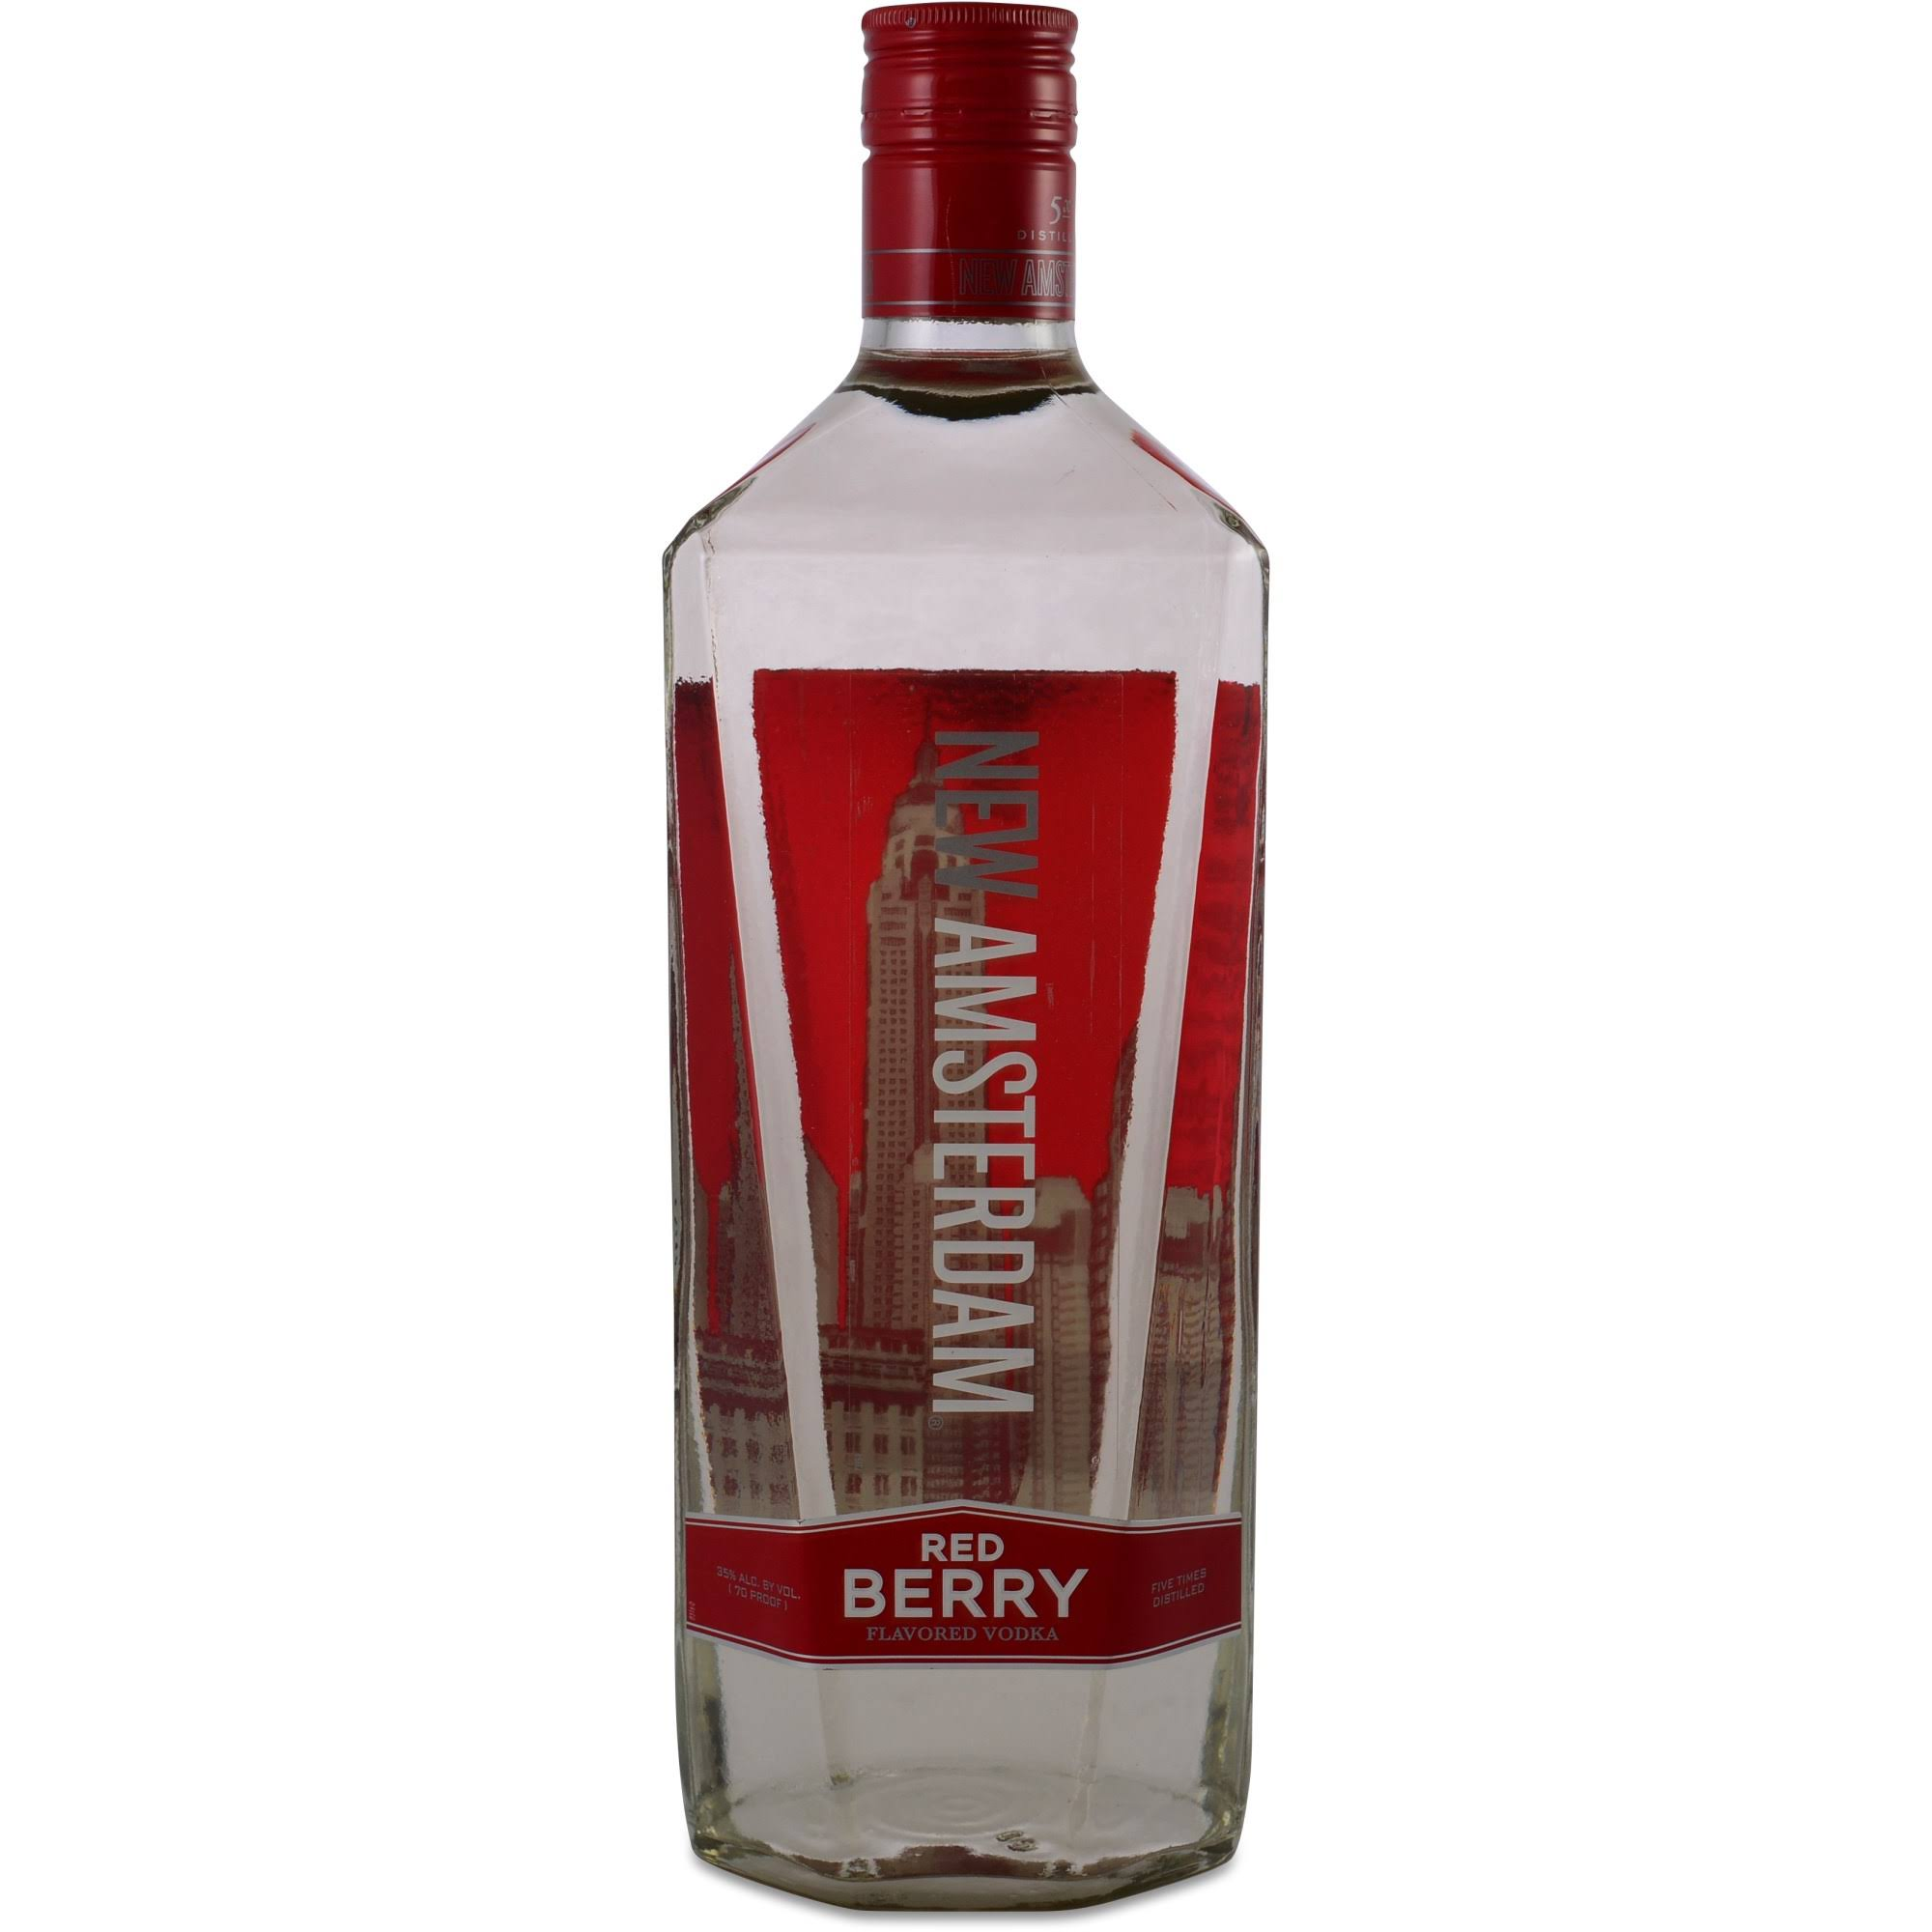 New Amsterdam Vodka, Red Berry - 1.75 L bottle